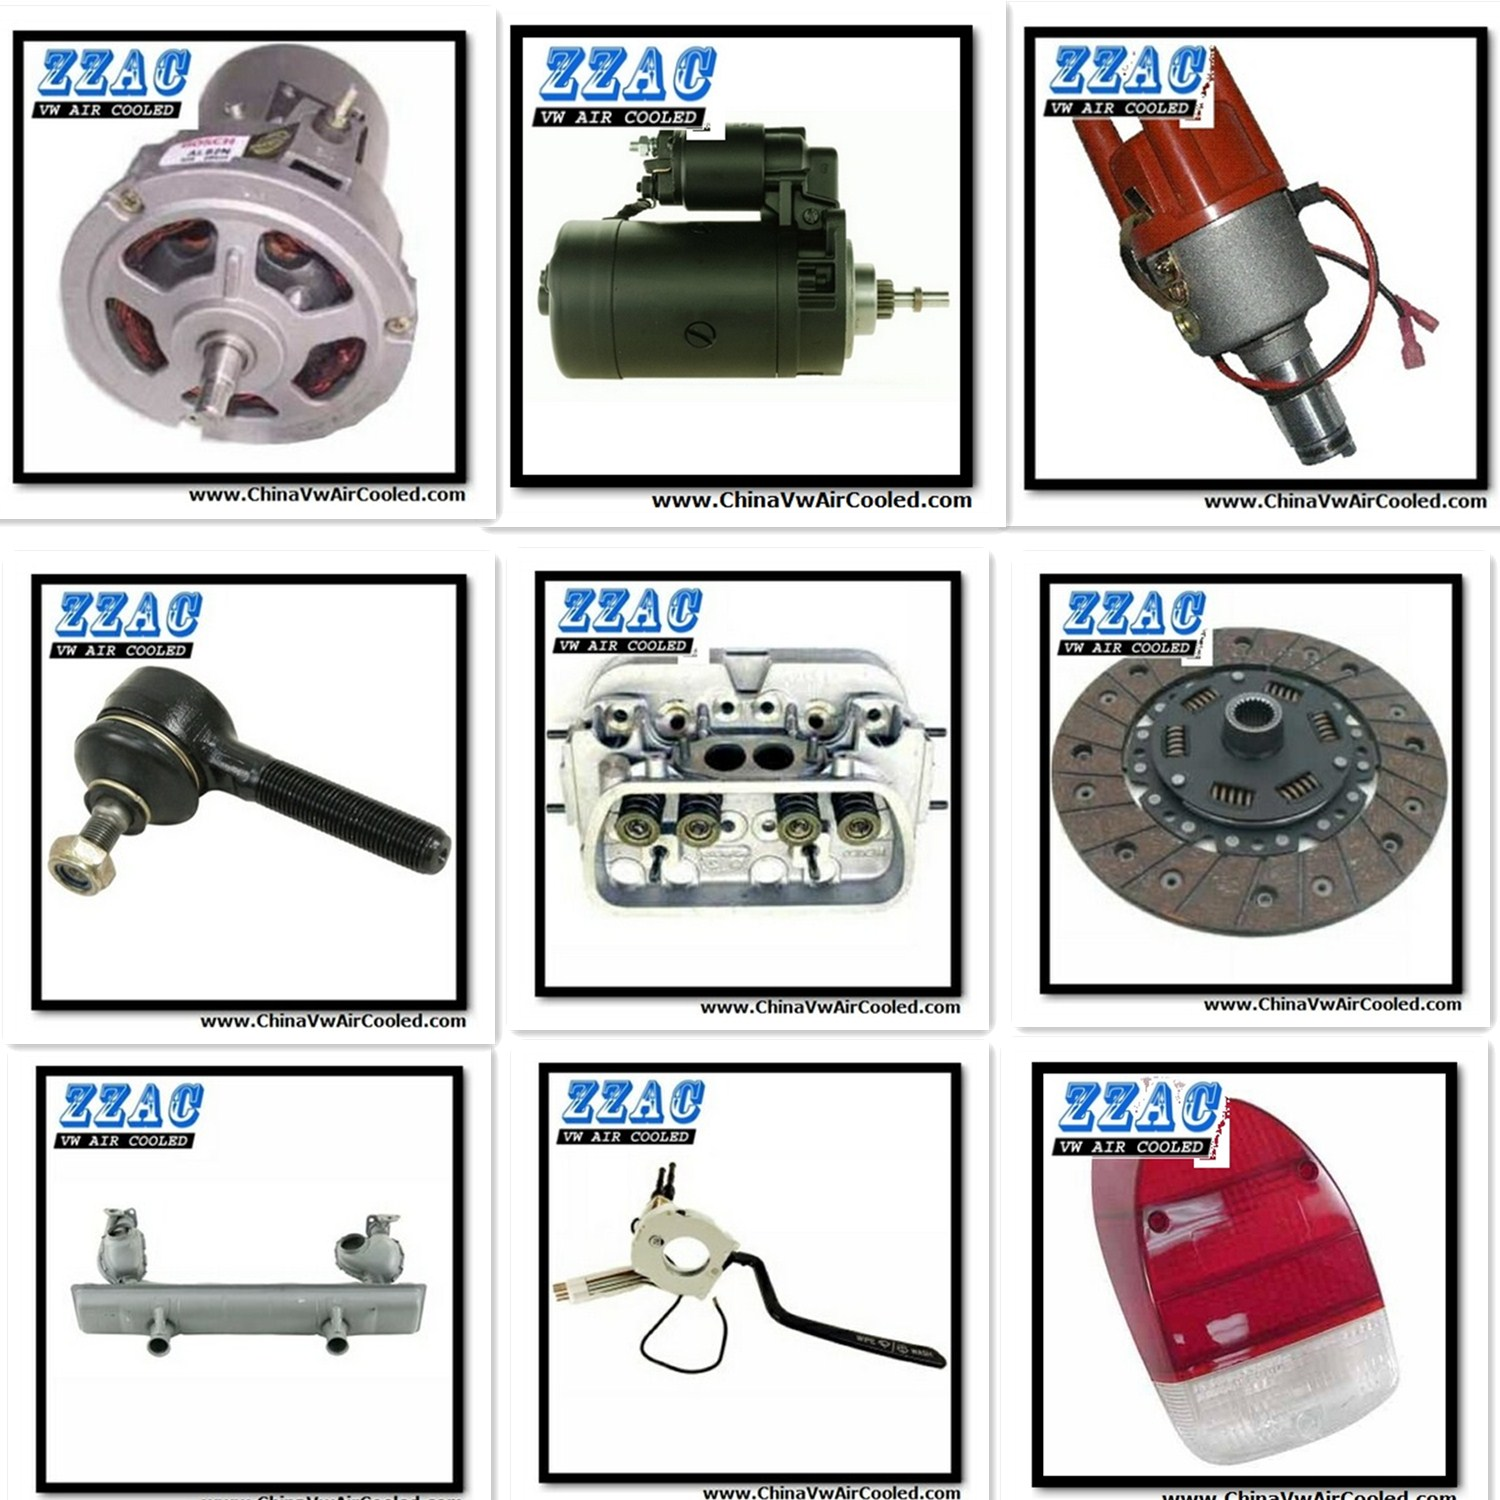 Vw Beetle Racing Parts: ChinaVwAirCooled ZZAC-Excellent China Exporter For VW Air